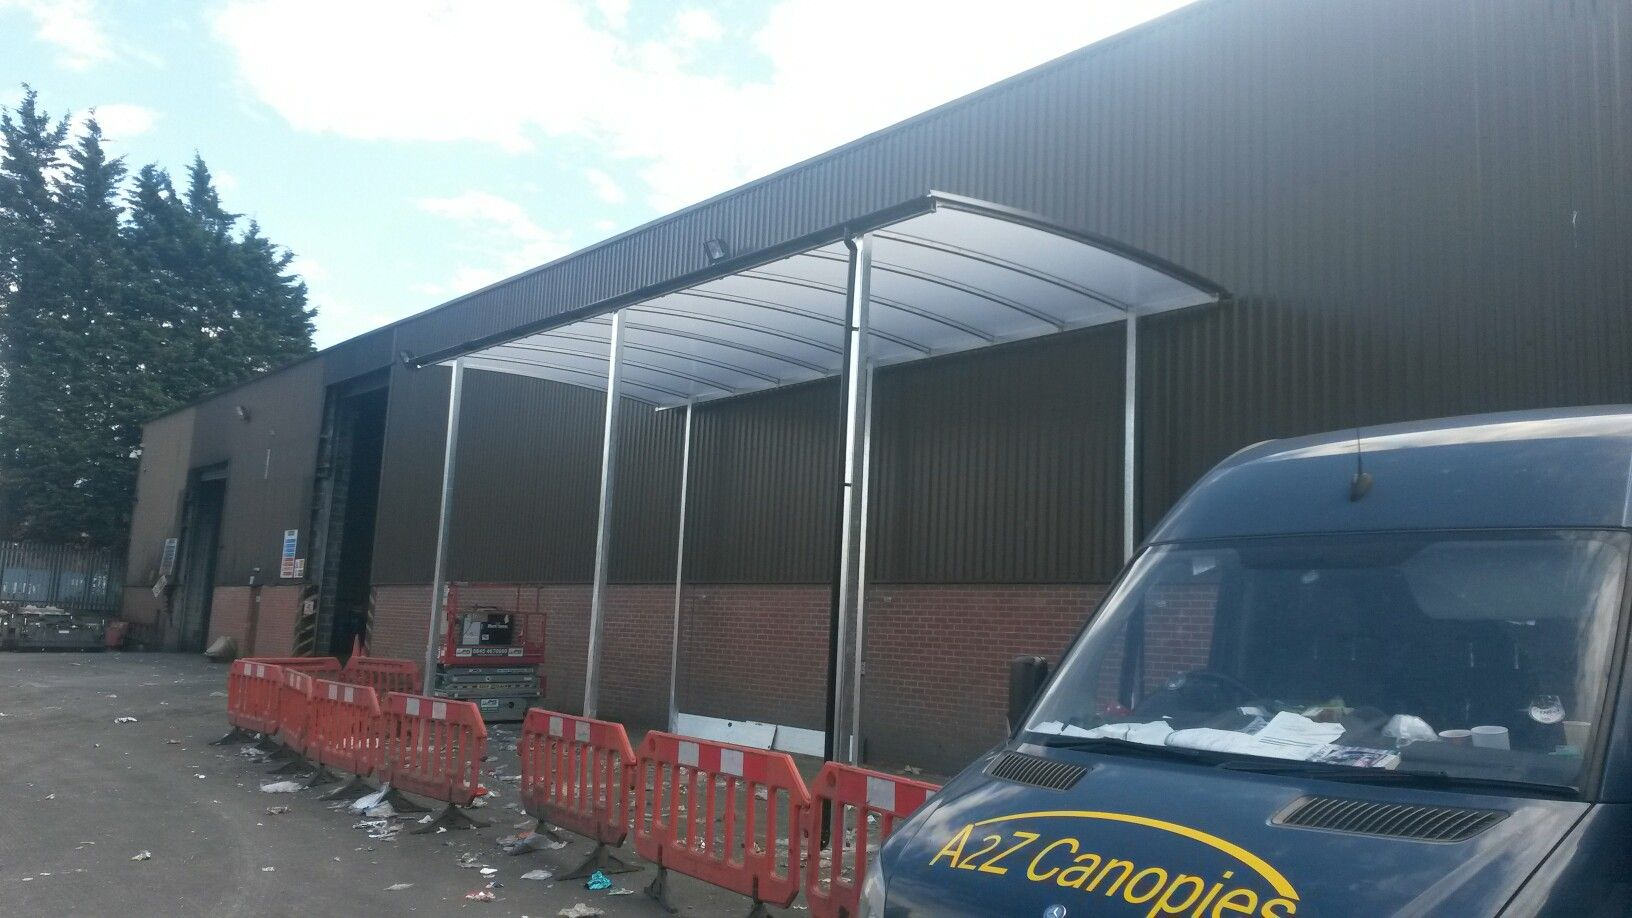 5 metre tall archway canopy fitted by a2z canopies & 5 metre tall archway canopy fitted by a2z canopies | Archway ...